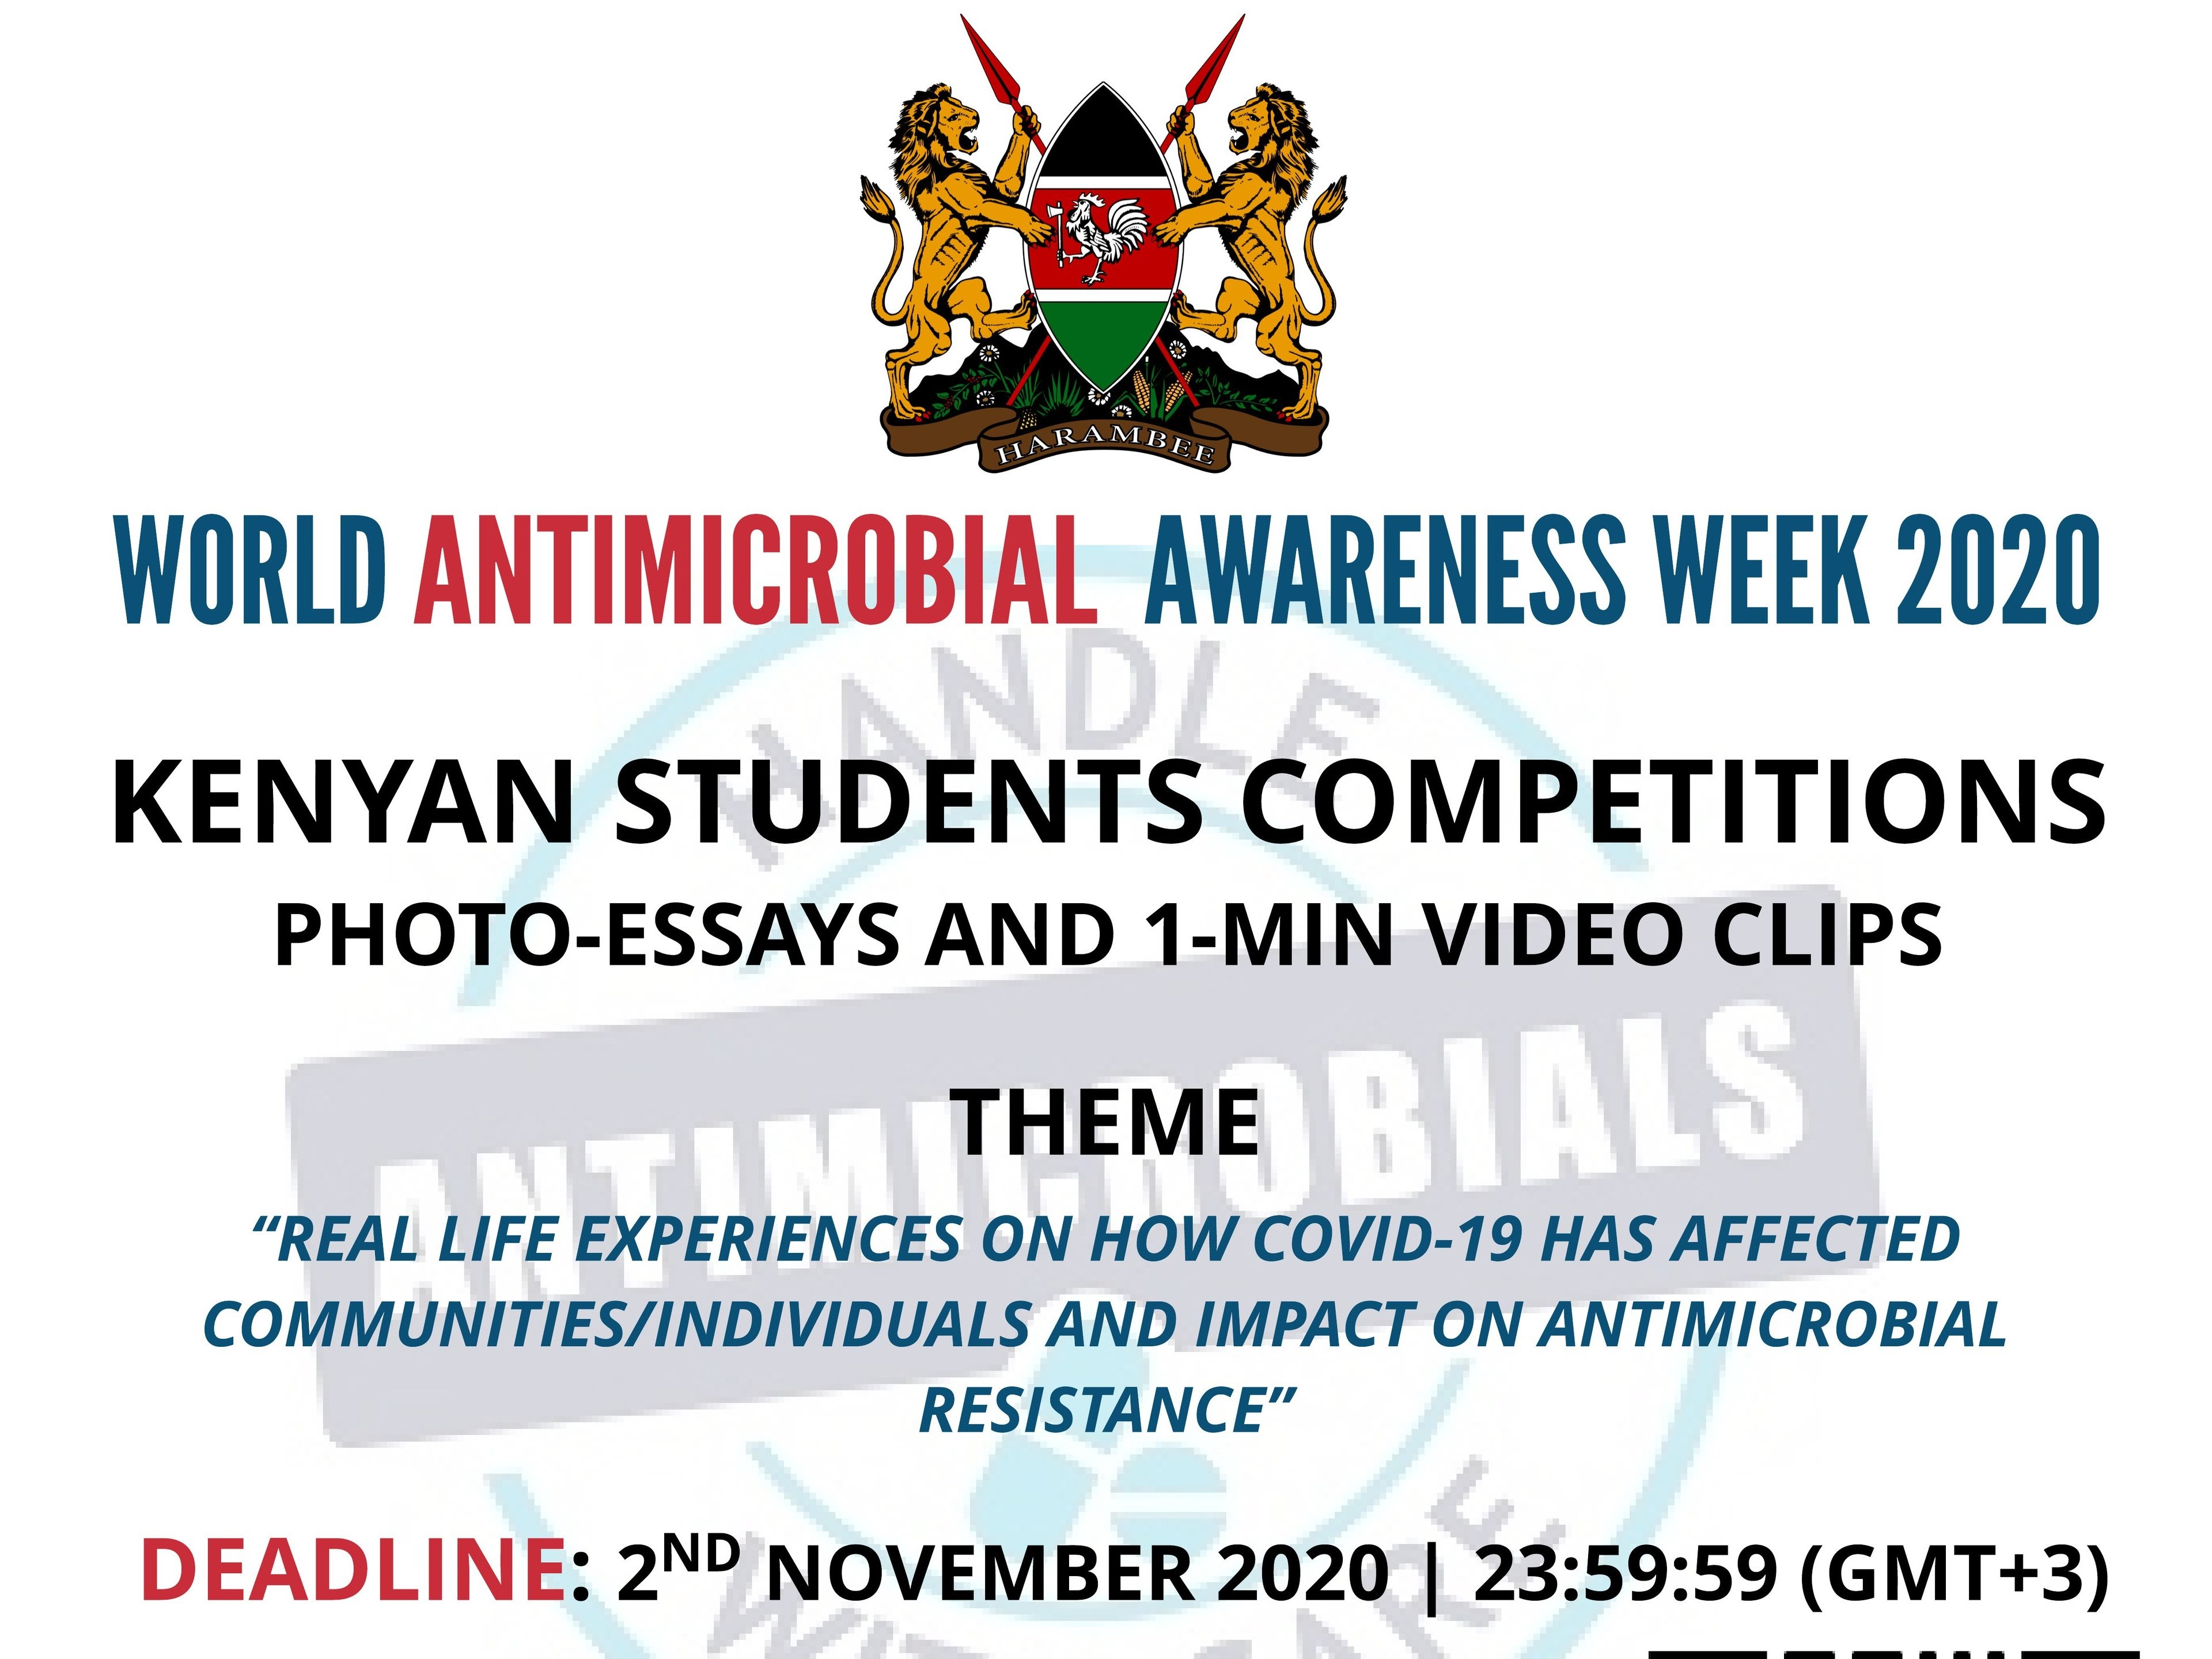 Wold Antimicrobial Awareness Week 2020, Kenya Student Photo Essay And Short Video Competition